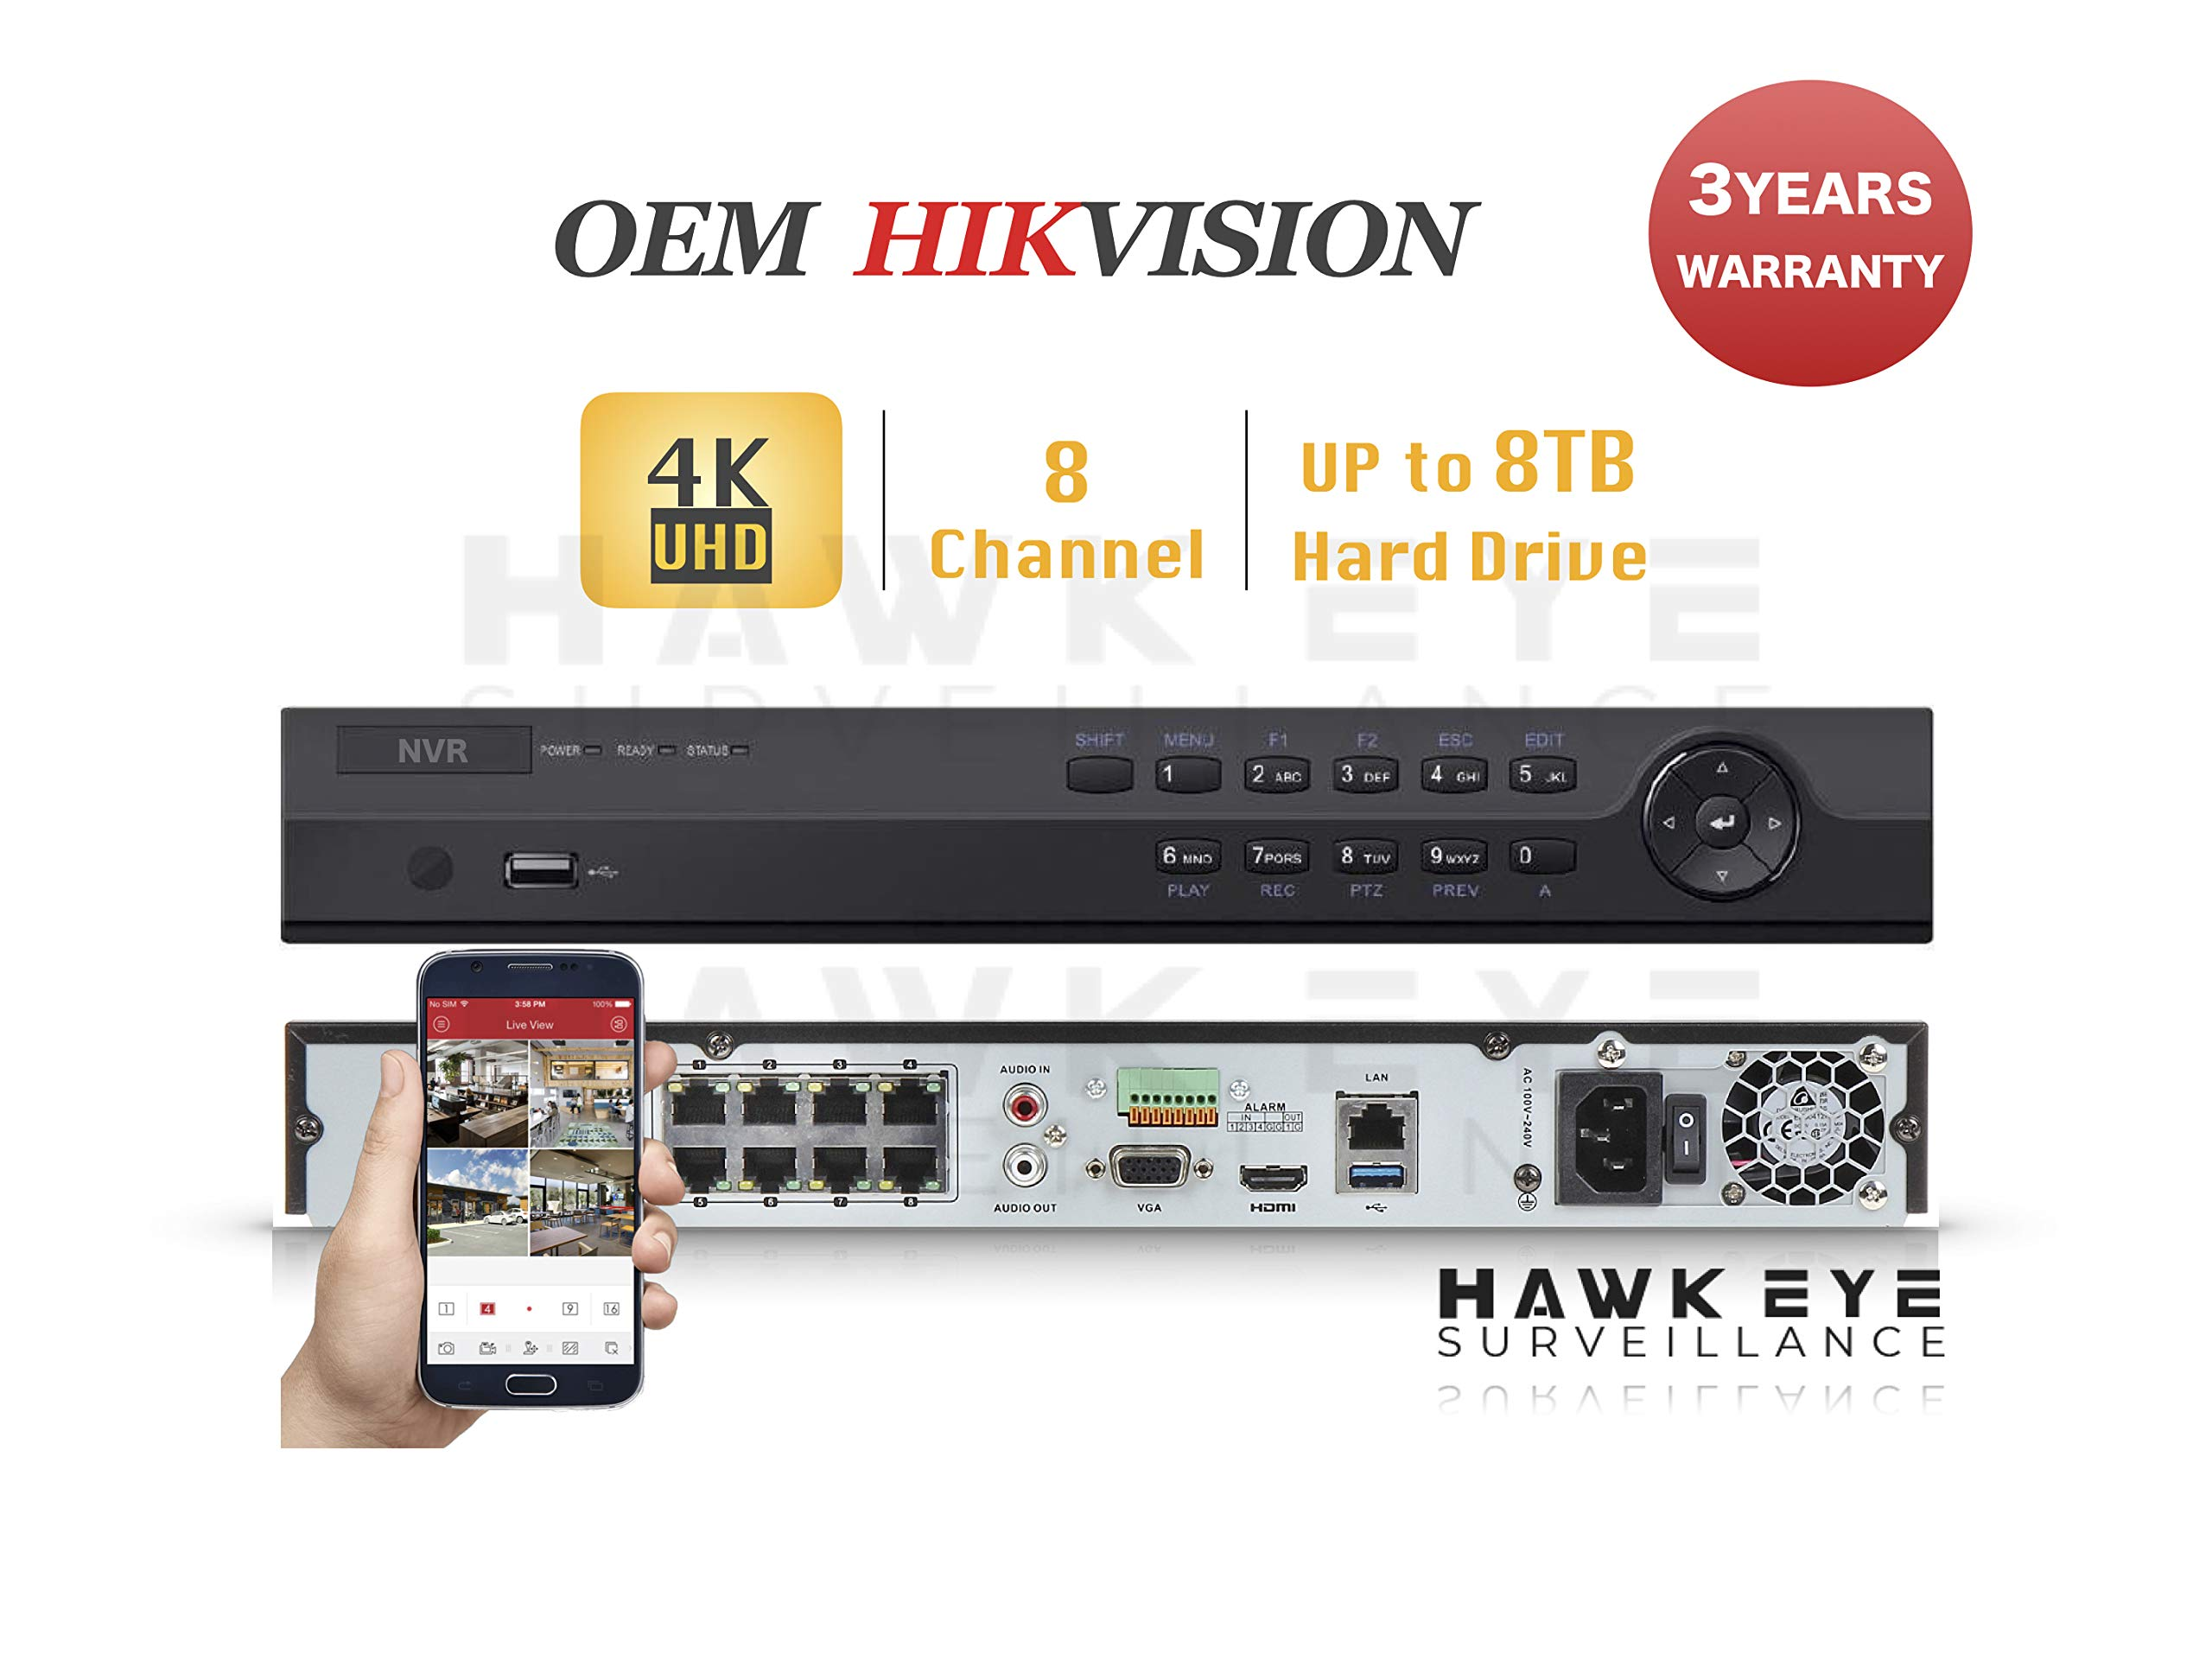 4K 8CH IP Network Video Recorder - 8 Built in PoE Port Up to 12MP Resolution Recording Compatible as DS-7608NI-K2/8P NVR 3 Year Warranty by HAWK EYE SURVEILLANCE